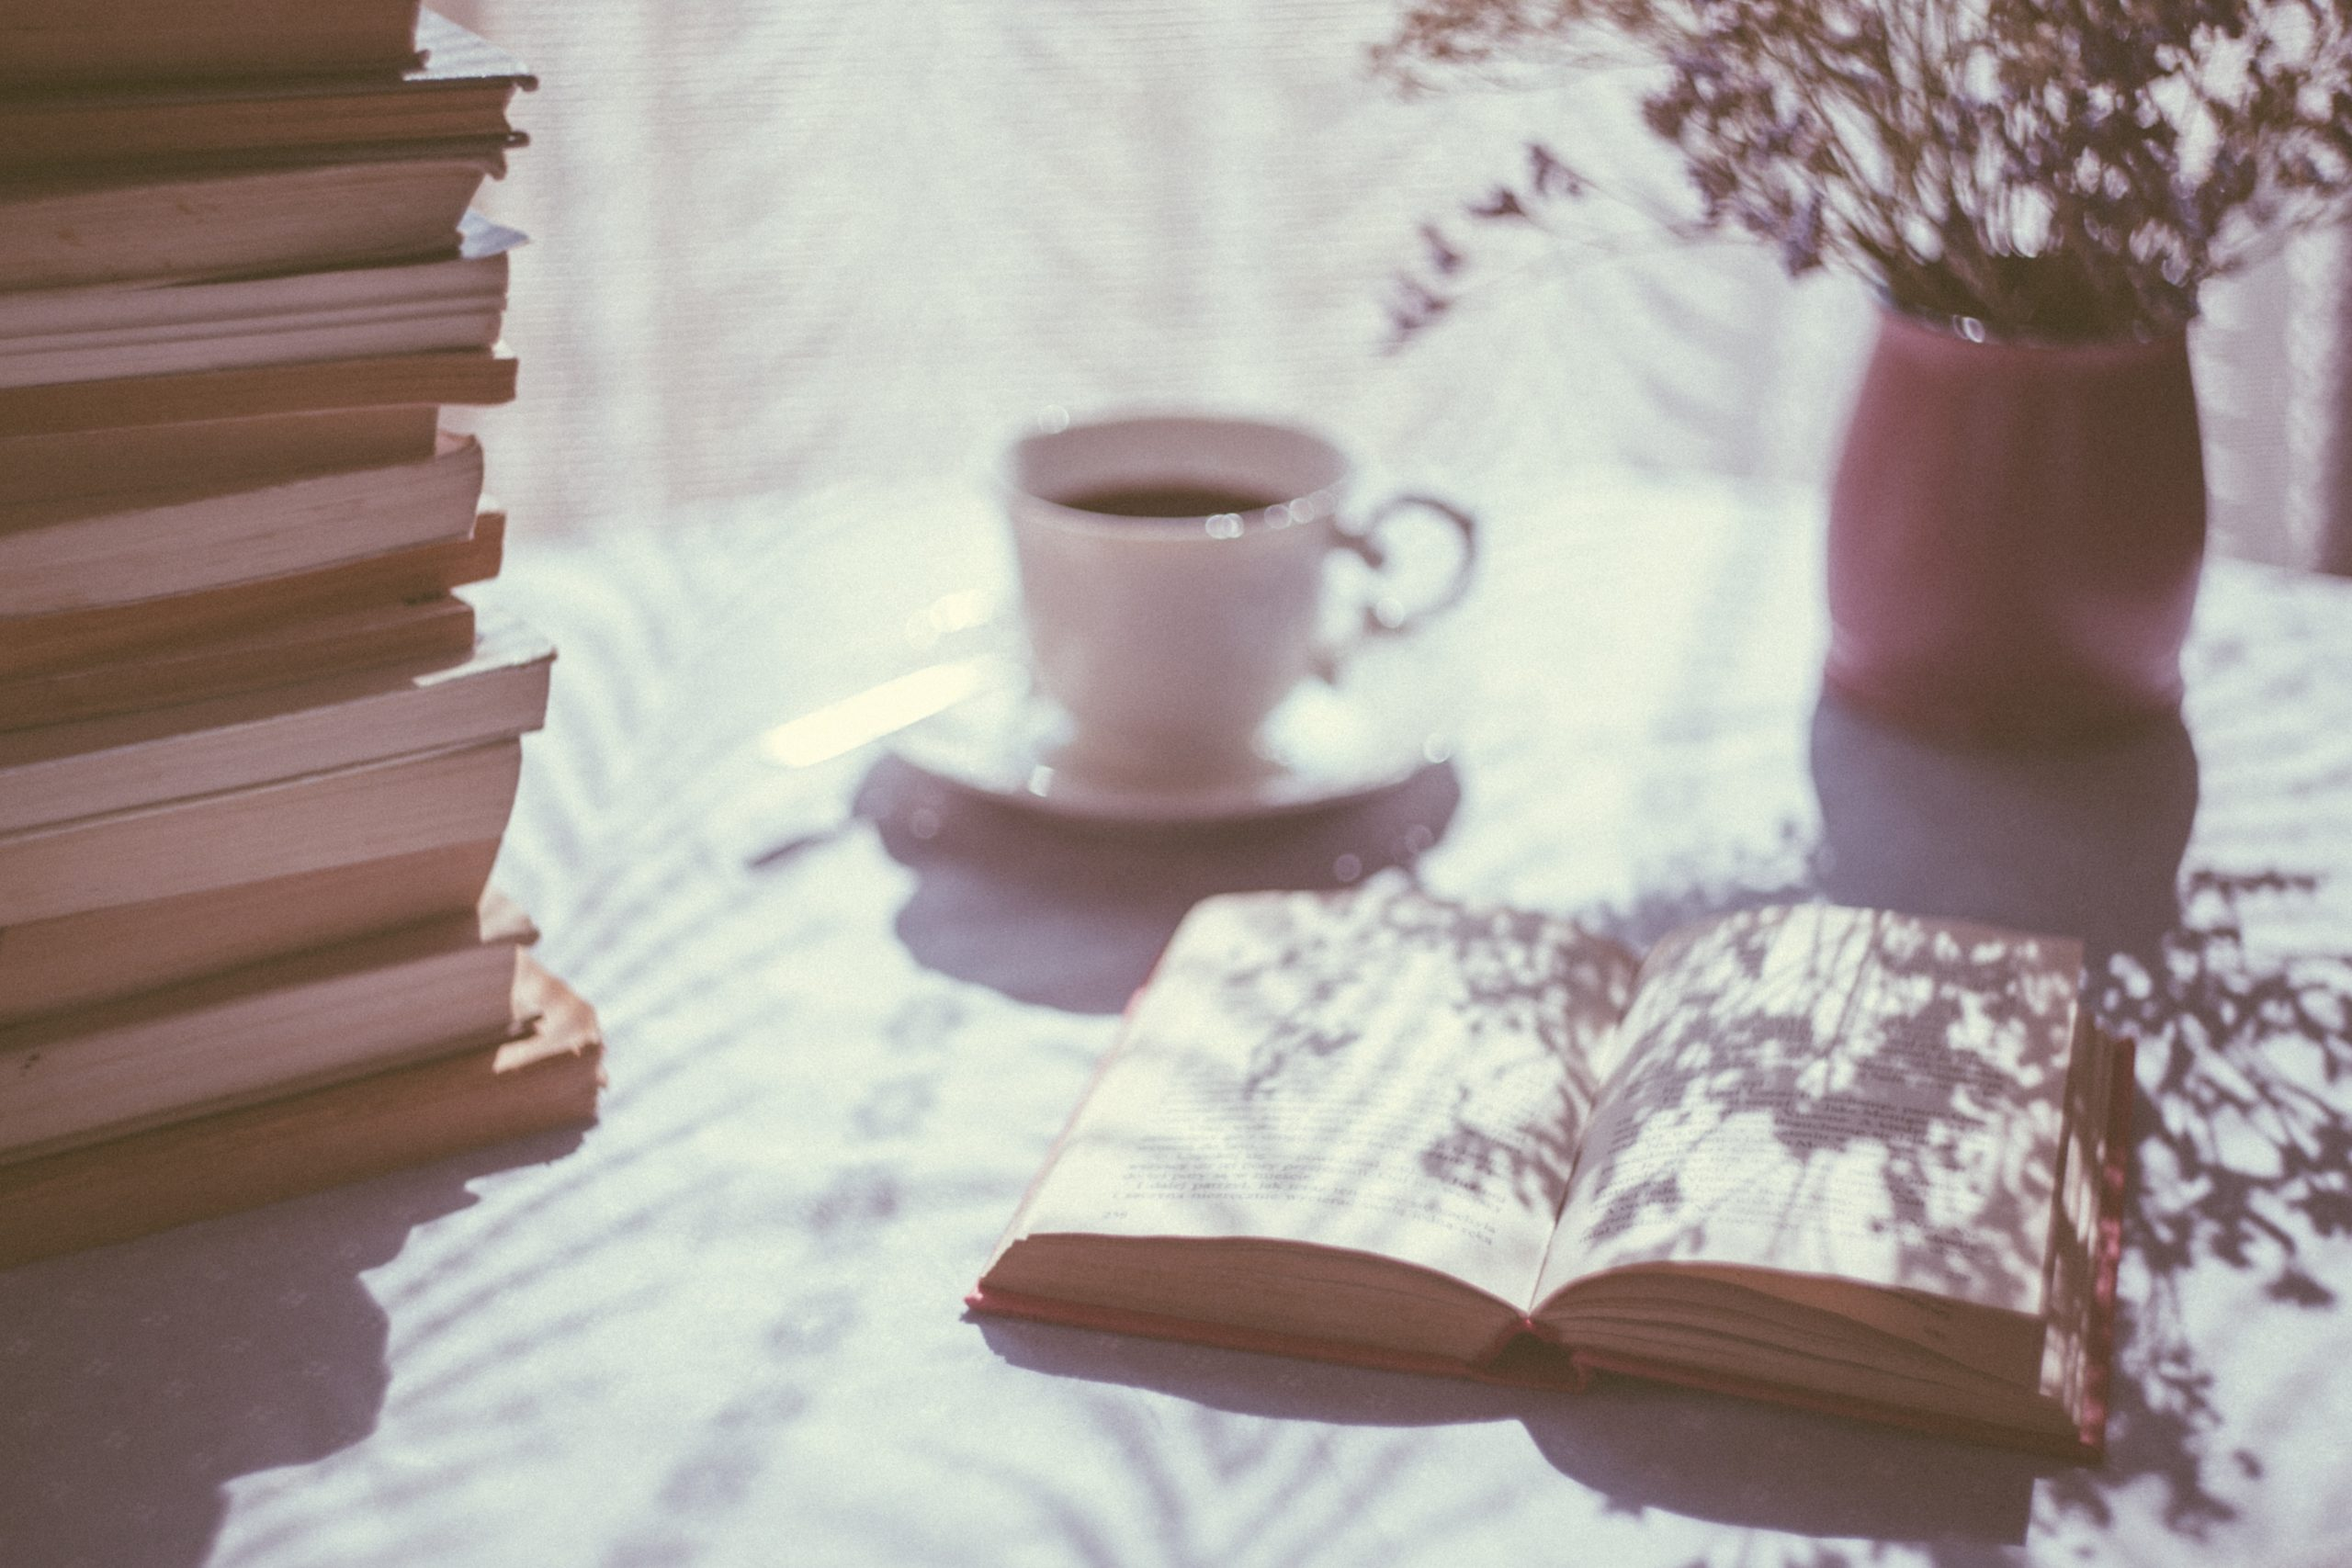 cup of coffee and book on table